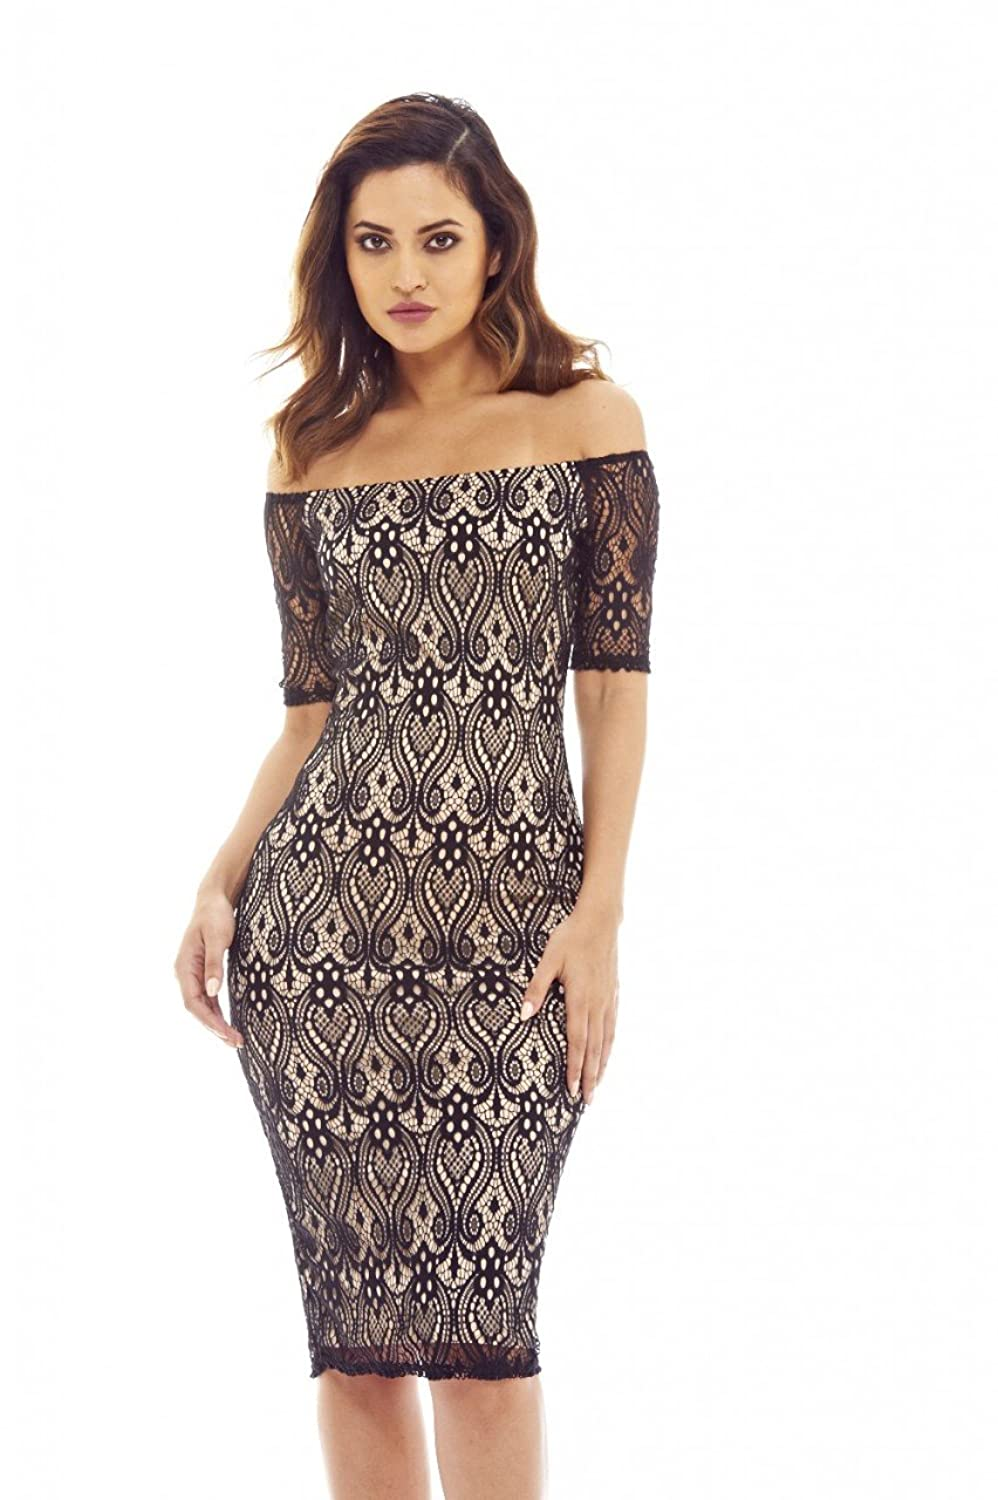 40a41aa159336e 100% Polyester Imported This black and nude bodycon midi dress with its lace  detailed front is perfect for any occasion! Color: Black